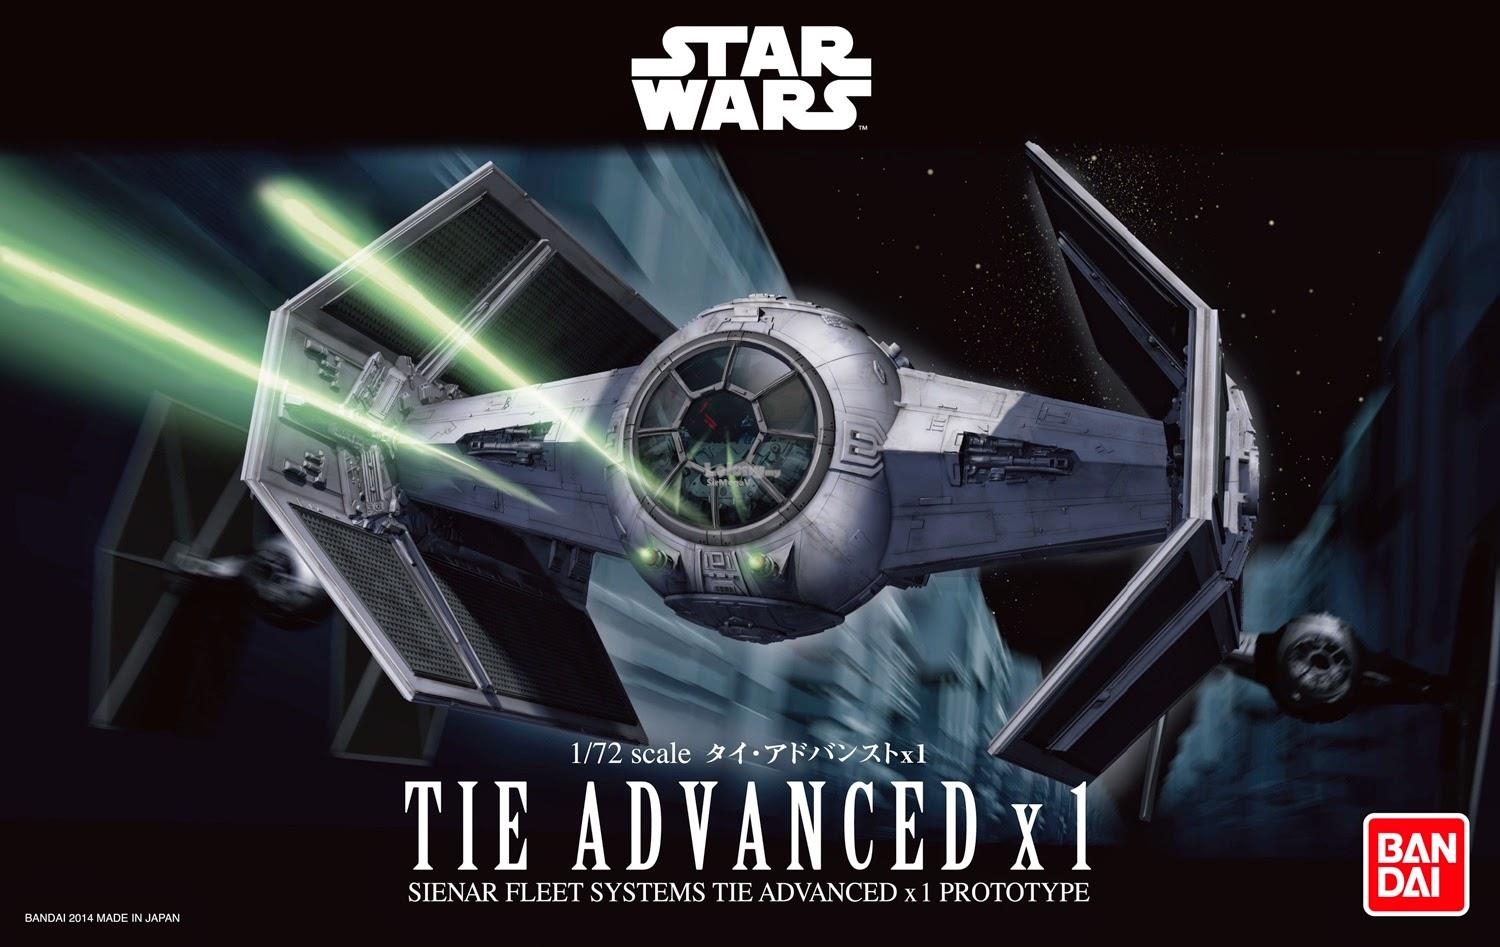 Star Wars - 1/72 Tie Advanced x 1